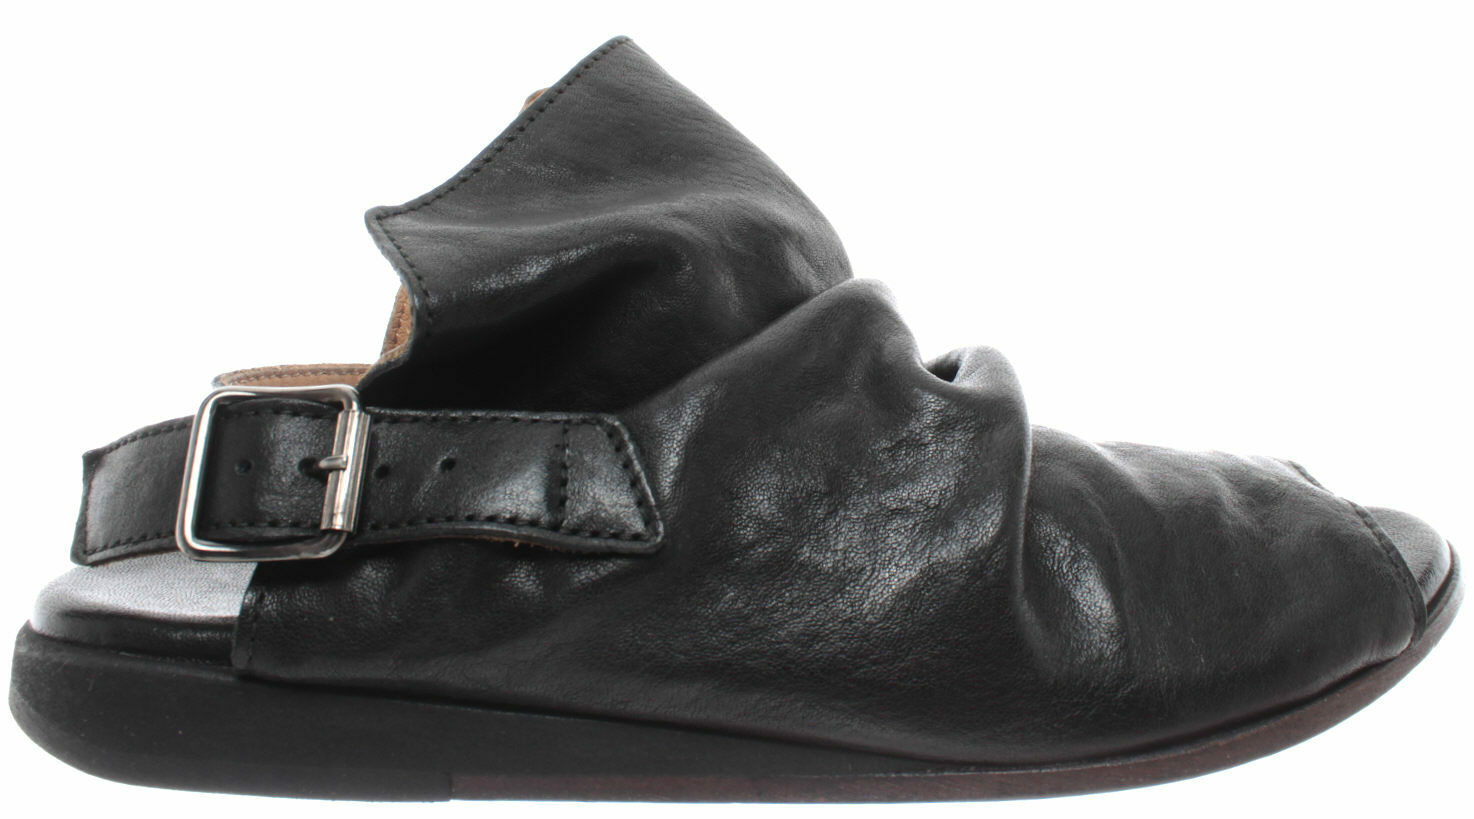 MOMA Women's shoes Sandals Sandals Sandals 36903-8A Lubrix black Leather Black Made in  New e57775